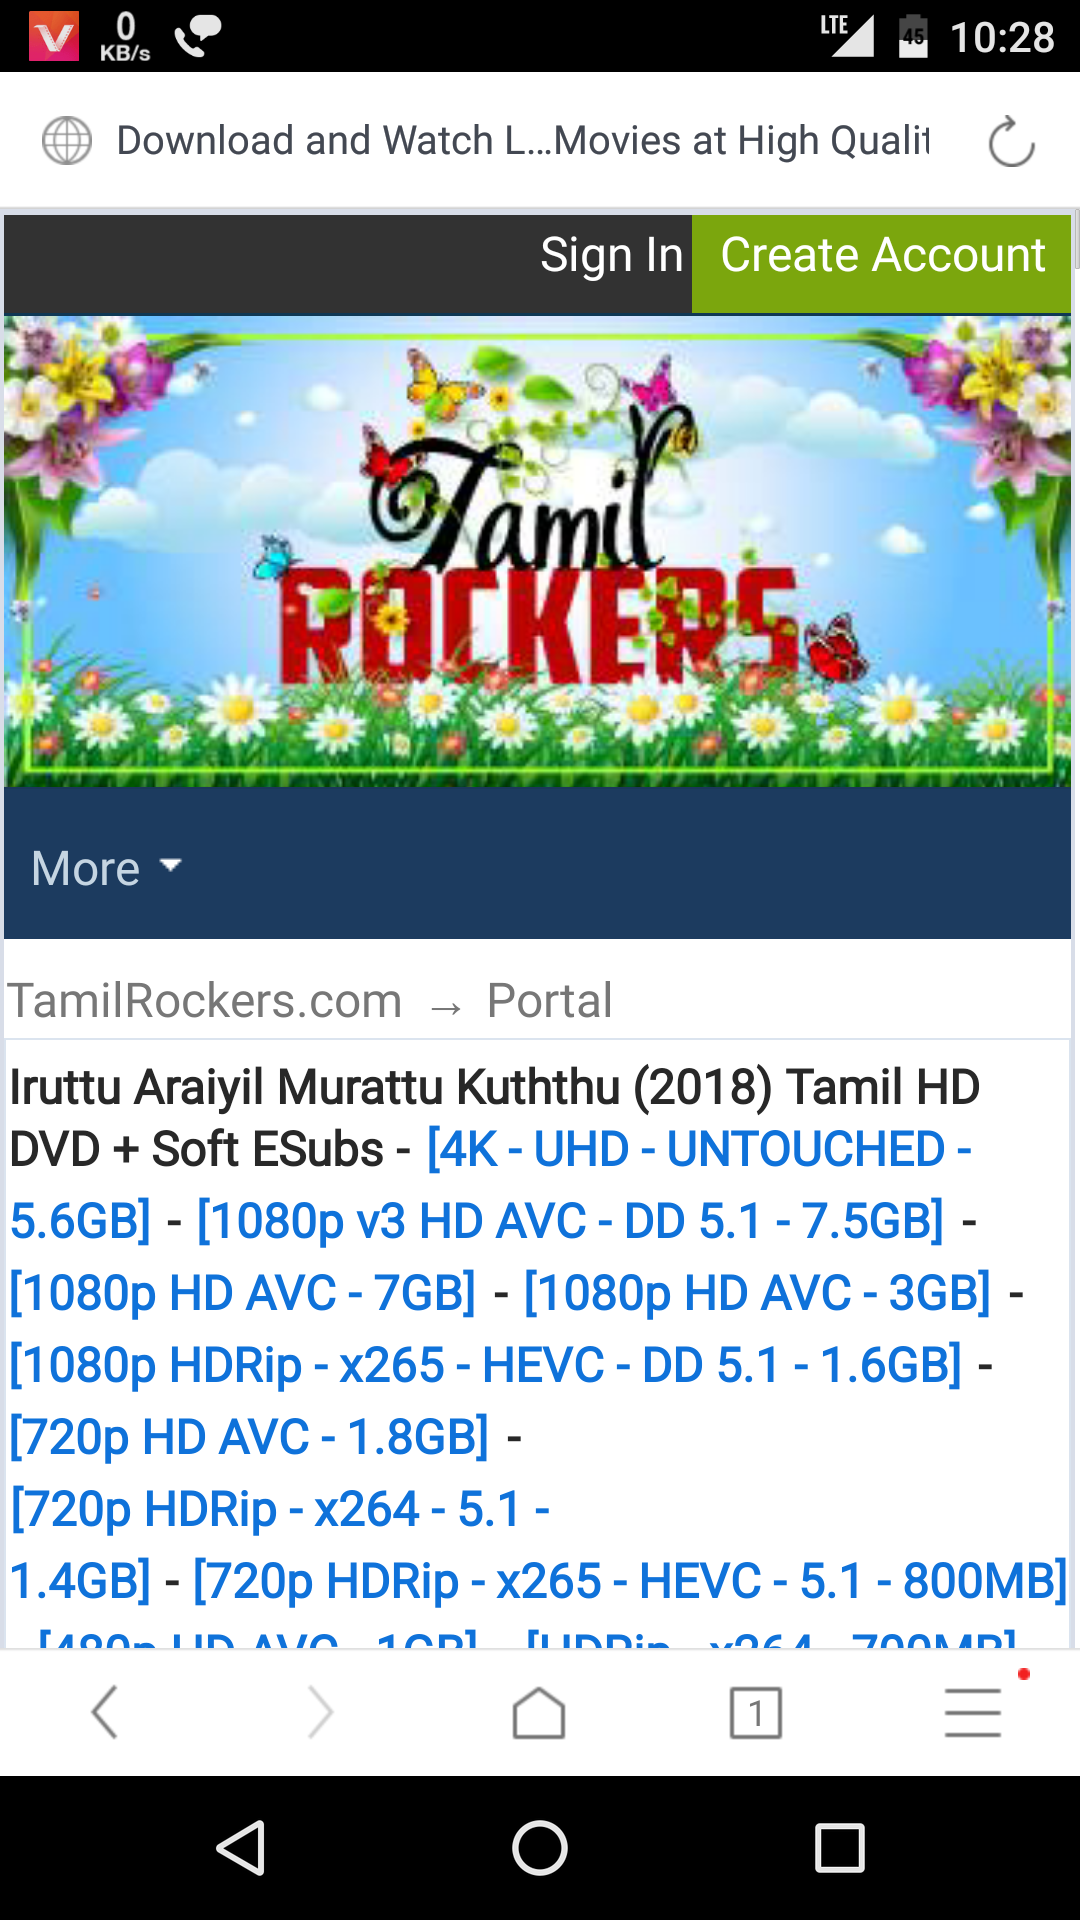 Rockers are fast - TAMILROCKERS CO Consumer Review - MouthShut com